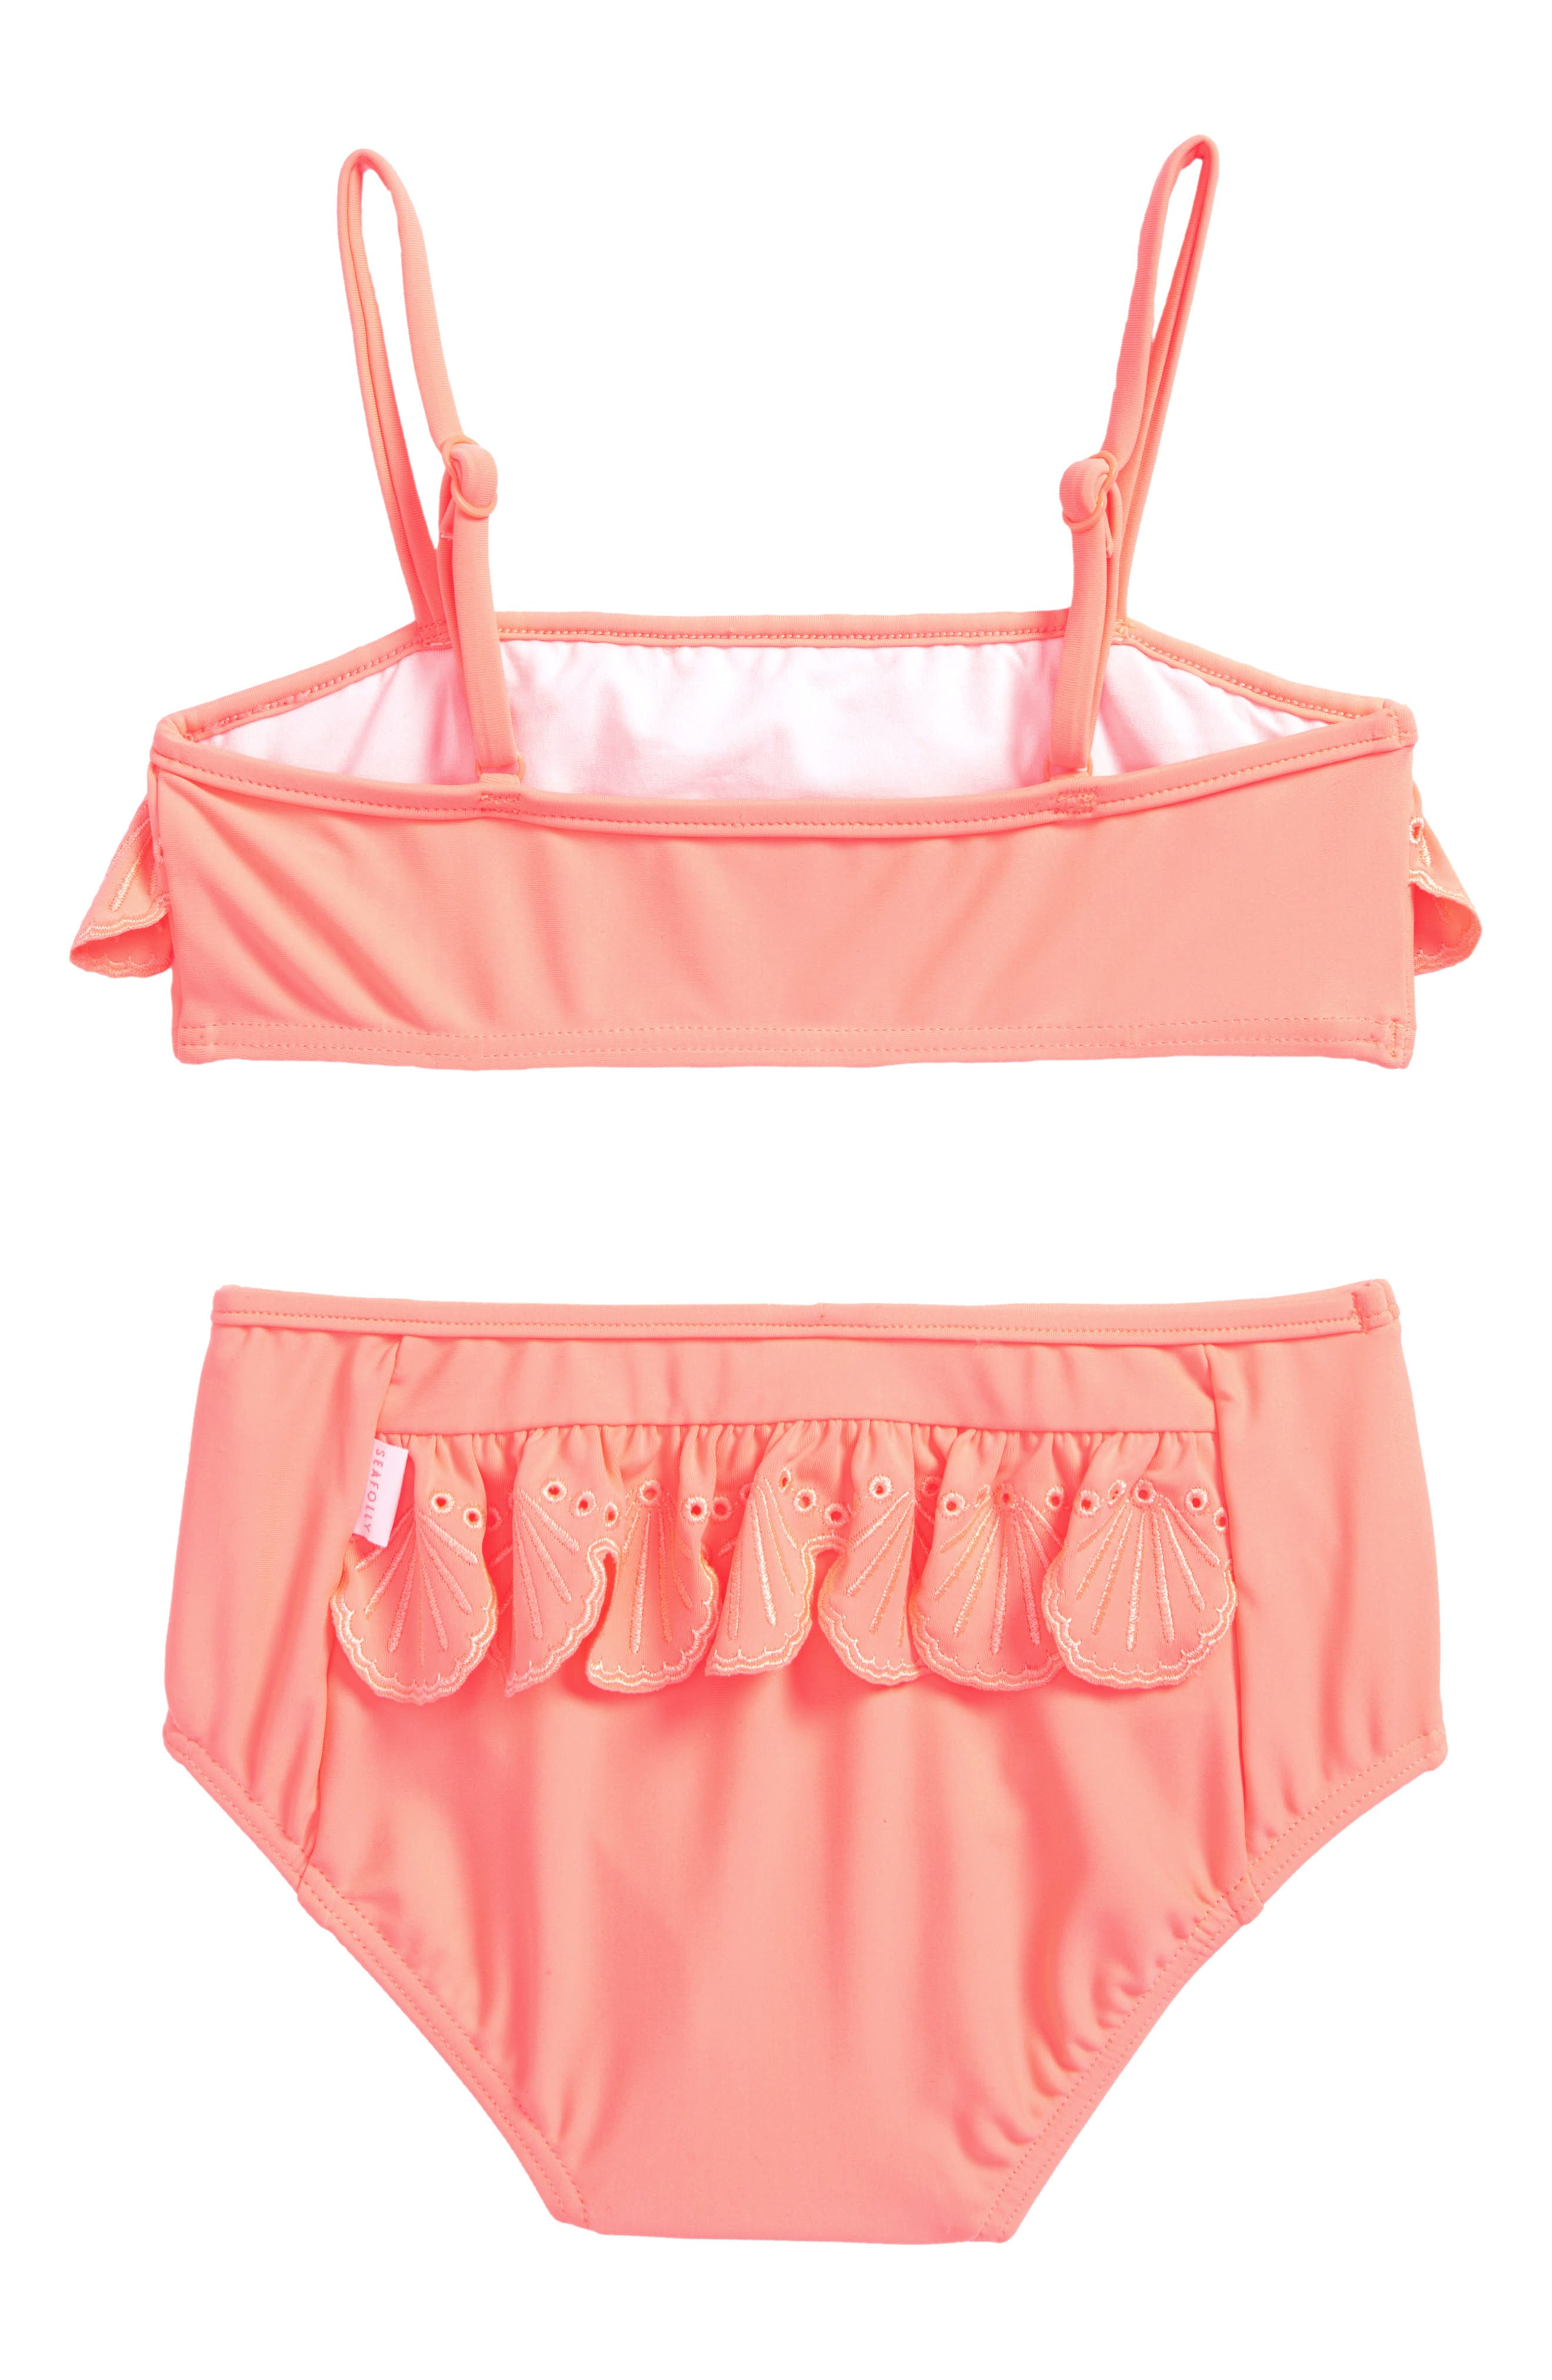 Sweet Summer Frill Two-Piece Swimsuit,                             Alternate thumbnail 2, color,                             Fusion Coral